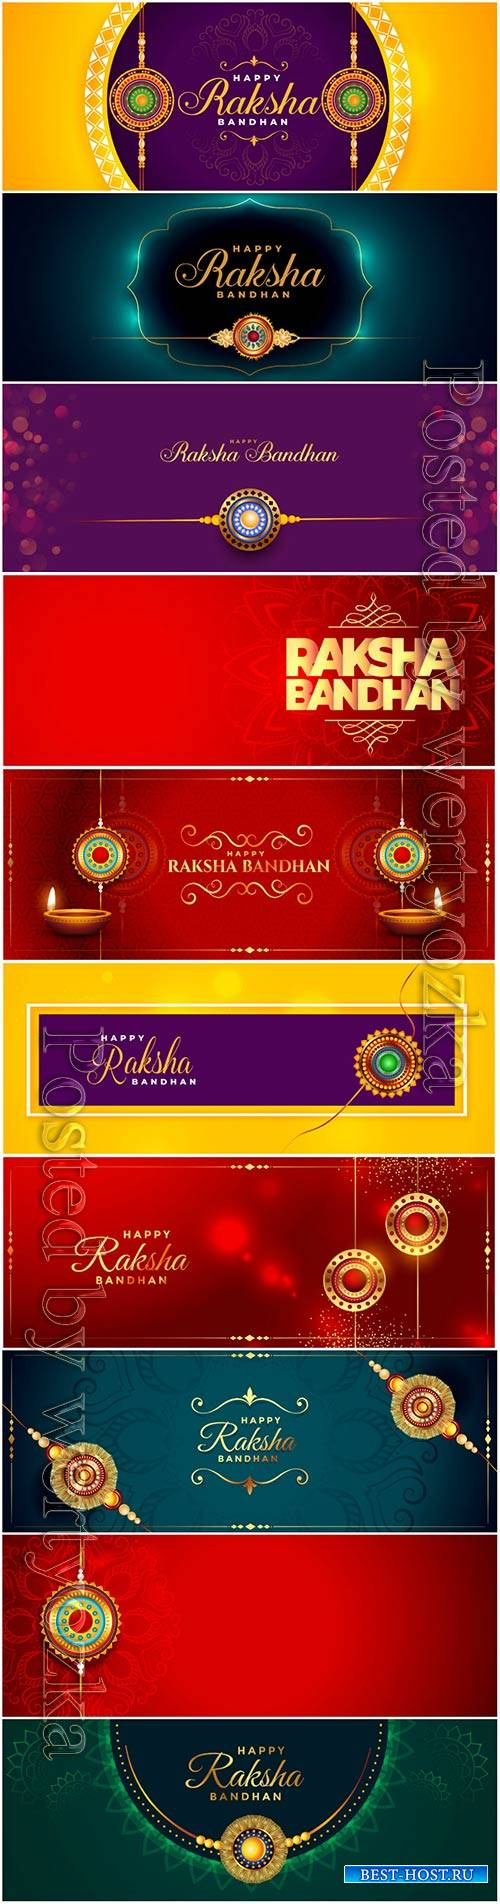 Raksha bandhan beautiful vector banner with golden rakhi